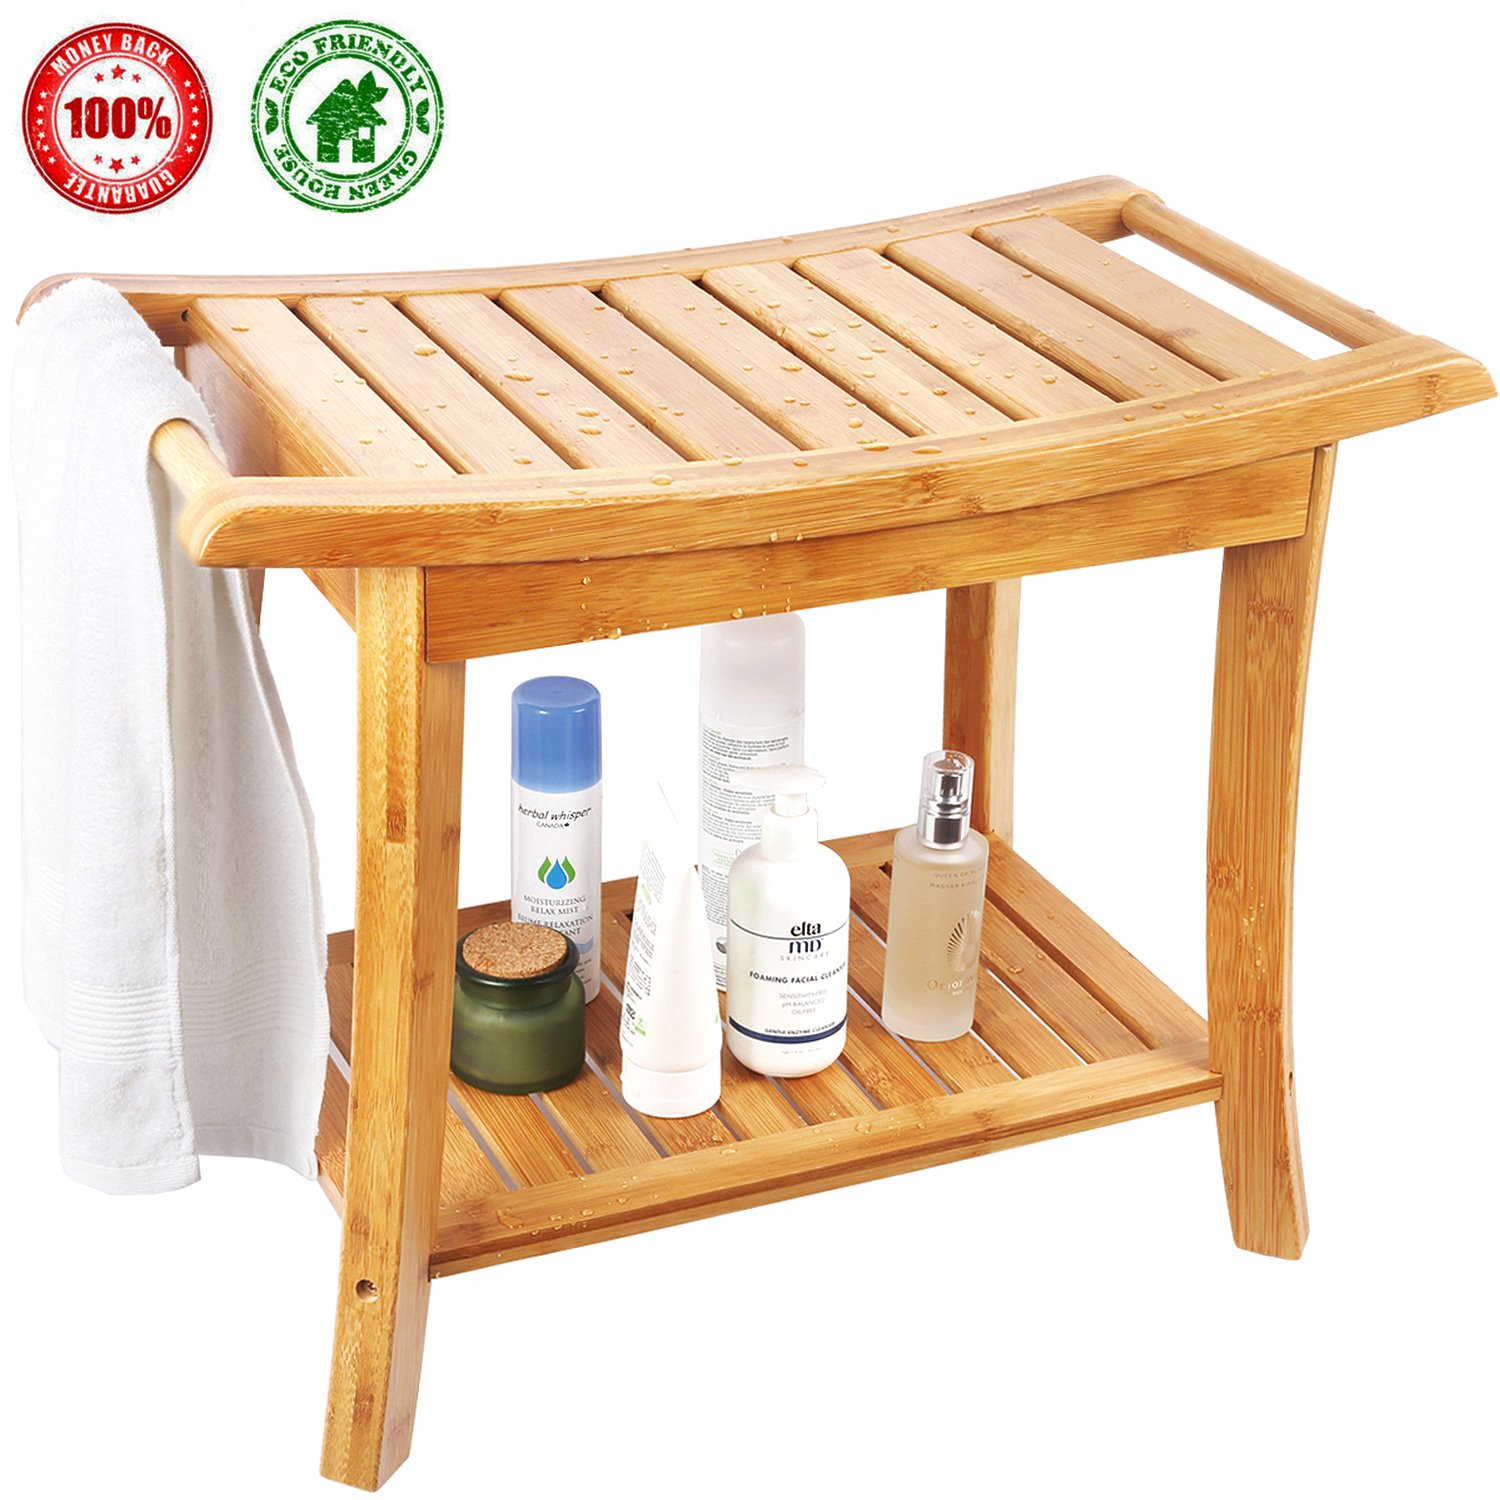 Shower Bench Spa Seat With 2-Tire Storage Racks Shelf Durable and Stable Indoor u0026Outdoor Bench with 100% Bamboo Nice Curving Bench- by HERDZI Ecobambu  sc 1 st  Weather Instruments Air Purifiers Global fashion! & Shower Bench Spa Seat With 2-Tire Storage Racks Shelf Durable and ...